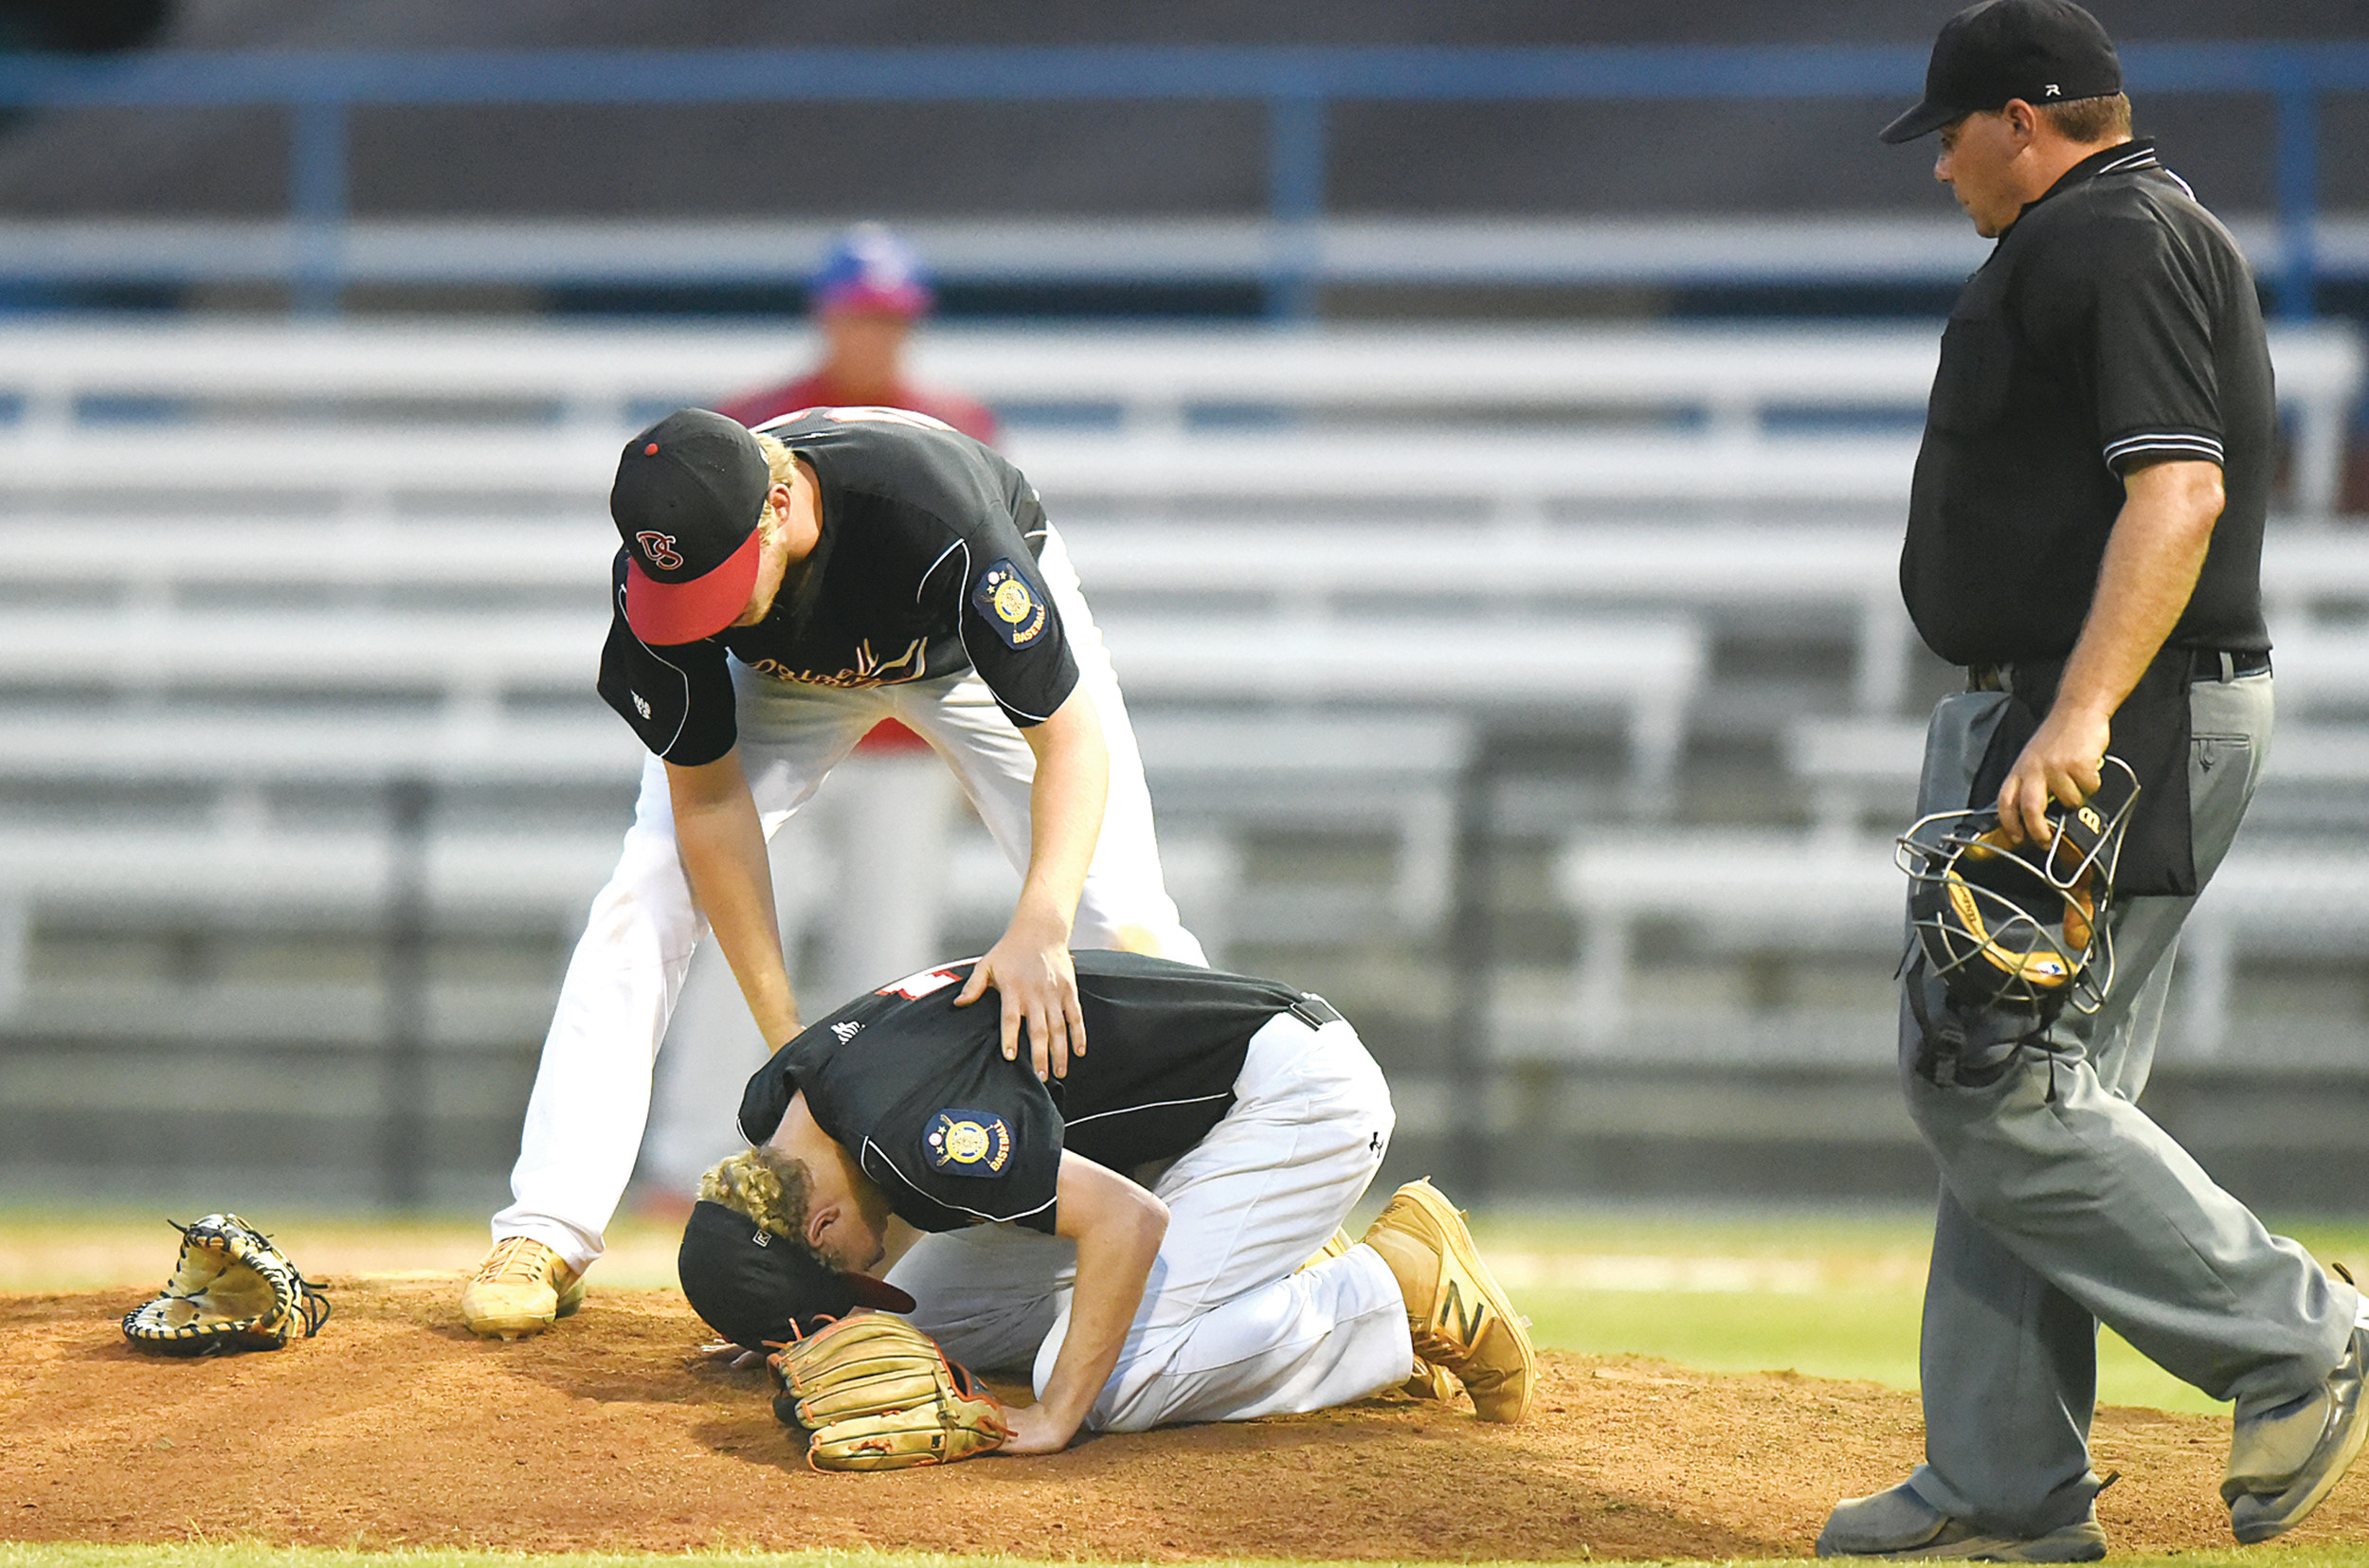 Players, umpires and coaches rush to the aid of Dalzell-Shaw relief pitcher Chris Parrish when a throw from the catcher for second base hit him during the Jets' 11-1 loss to Sumter on Monday at Riley Park. Parrish had to leave the game